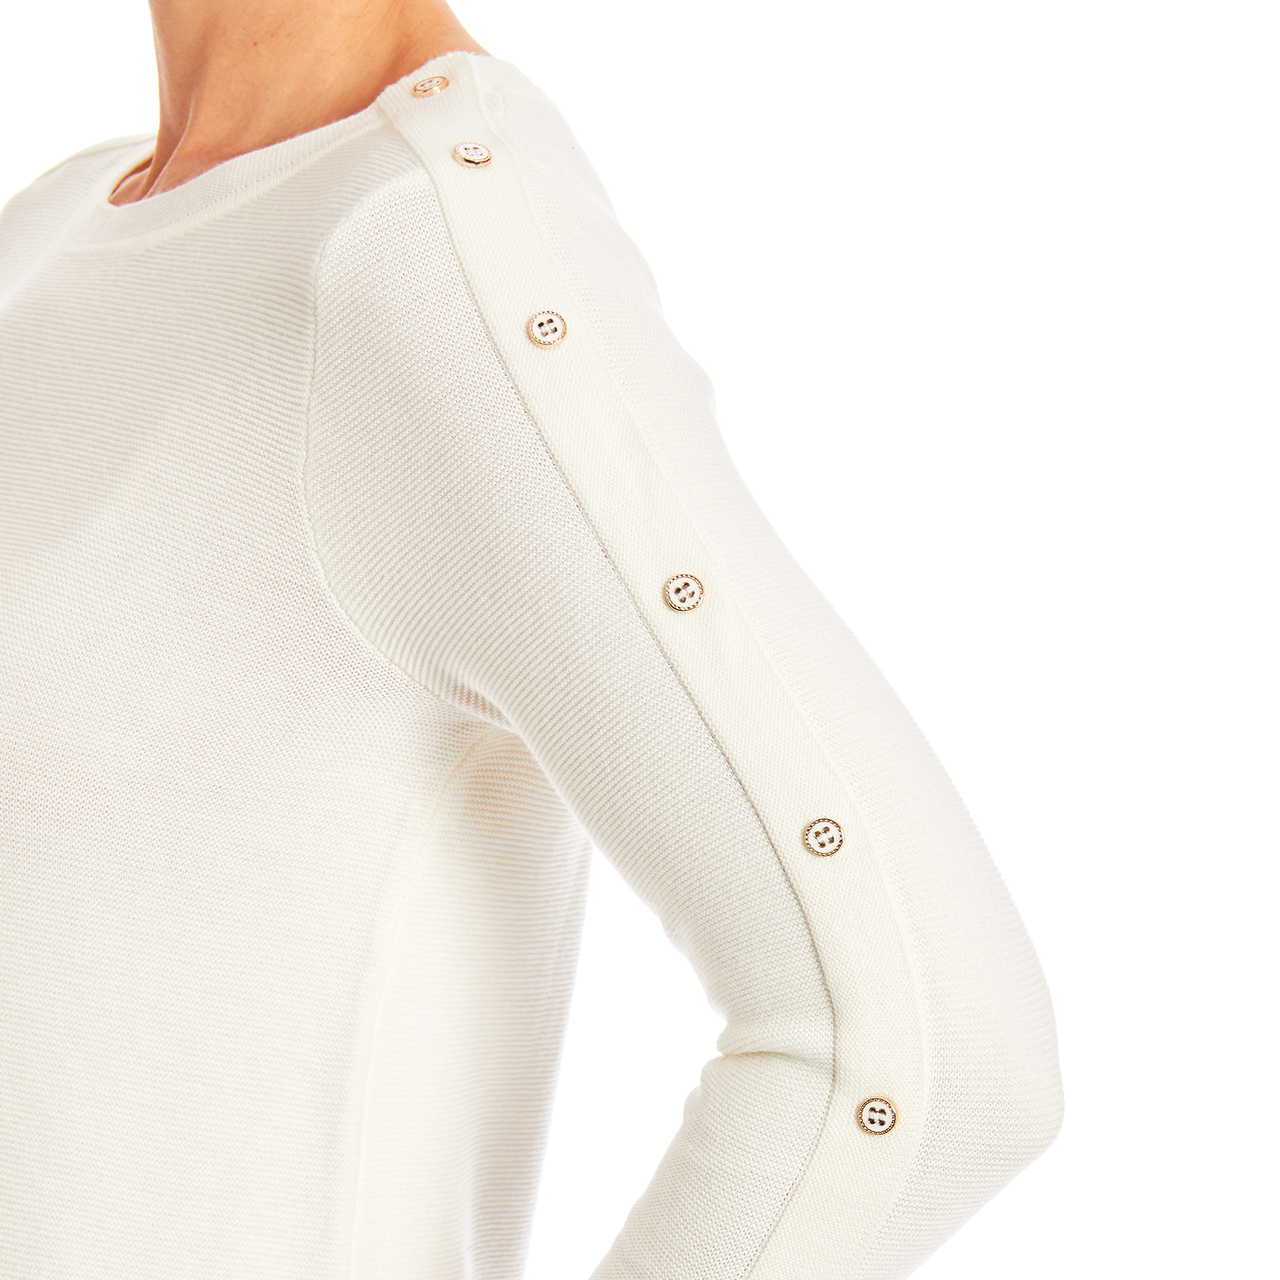 3/4 Sleeve Novelty Button Sleeve Crew Neck Textured Sweater in Ivory